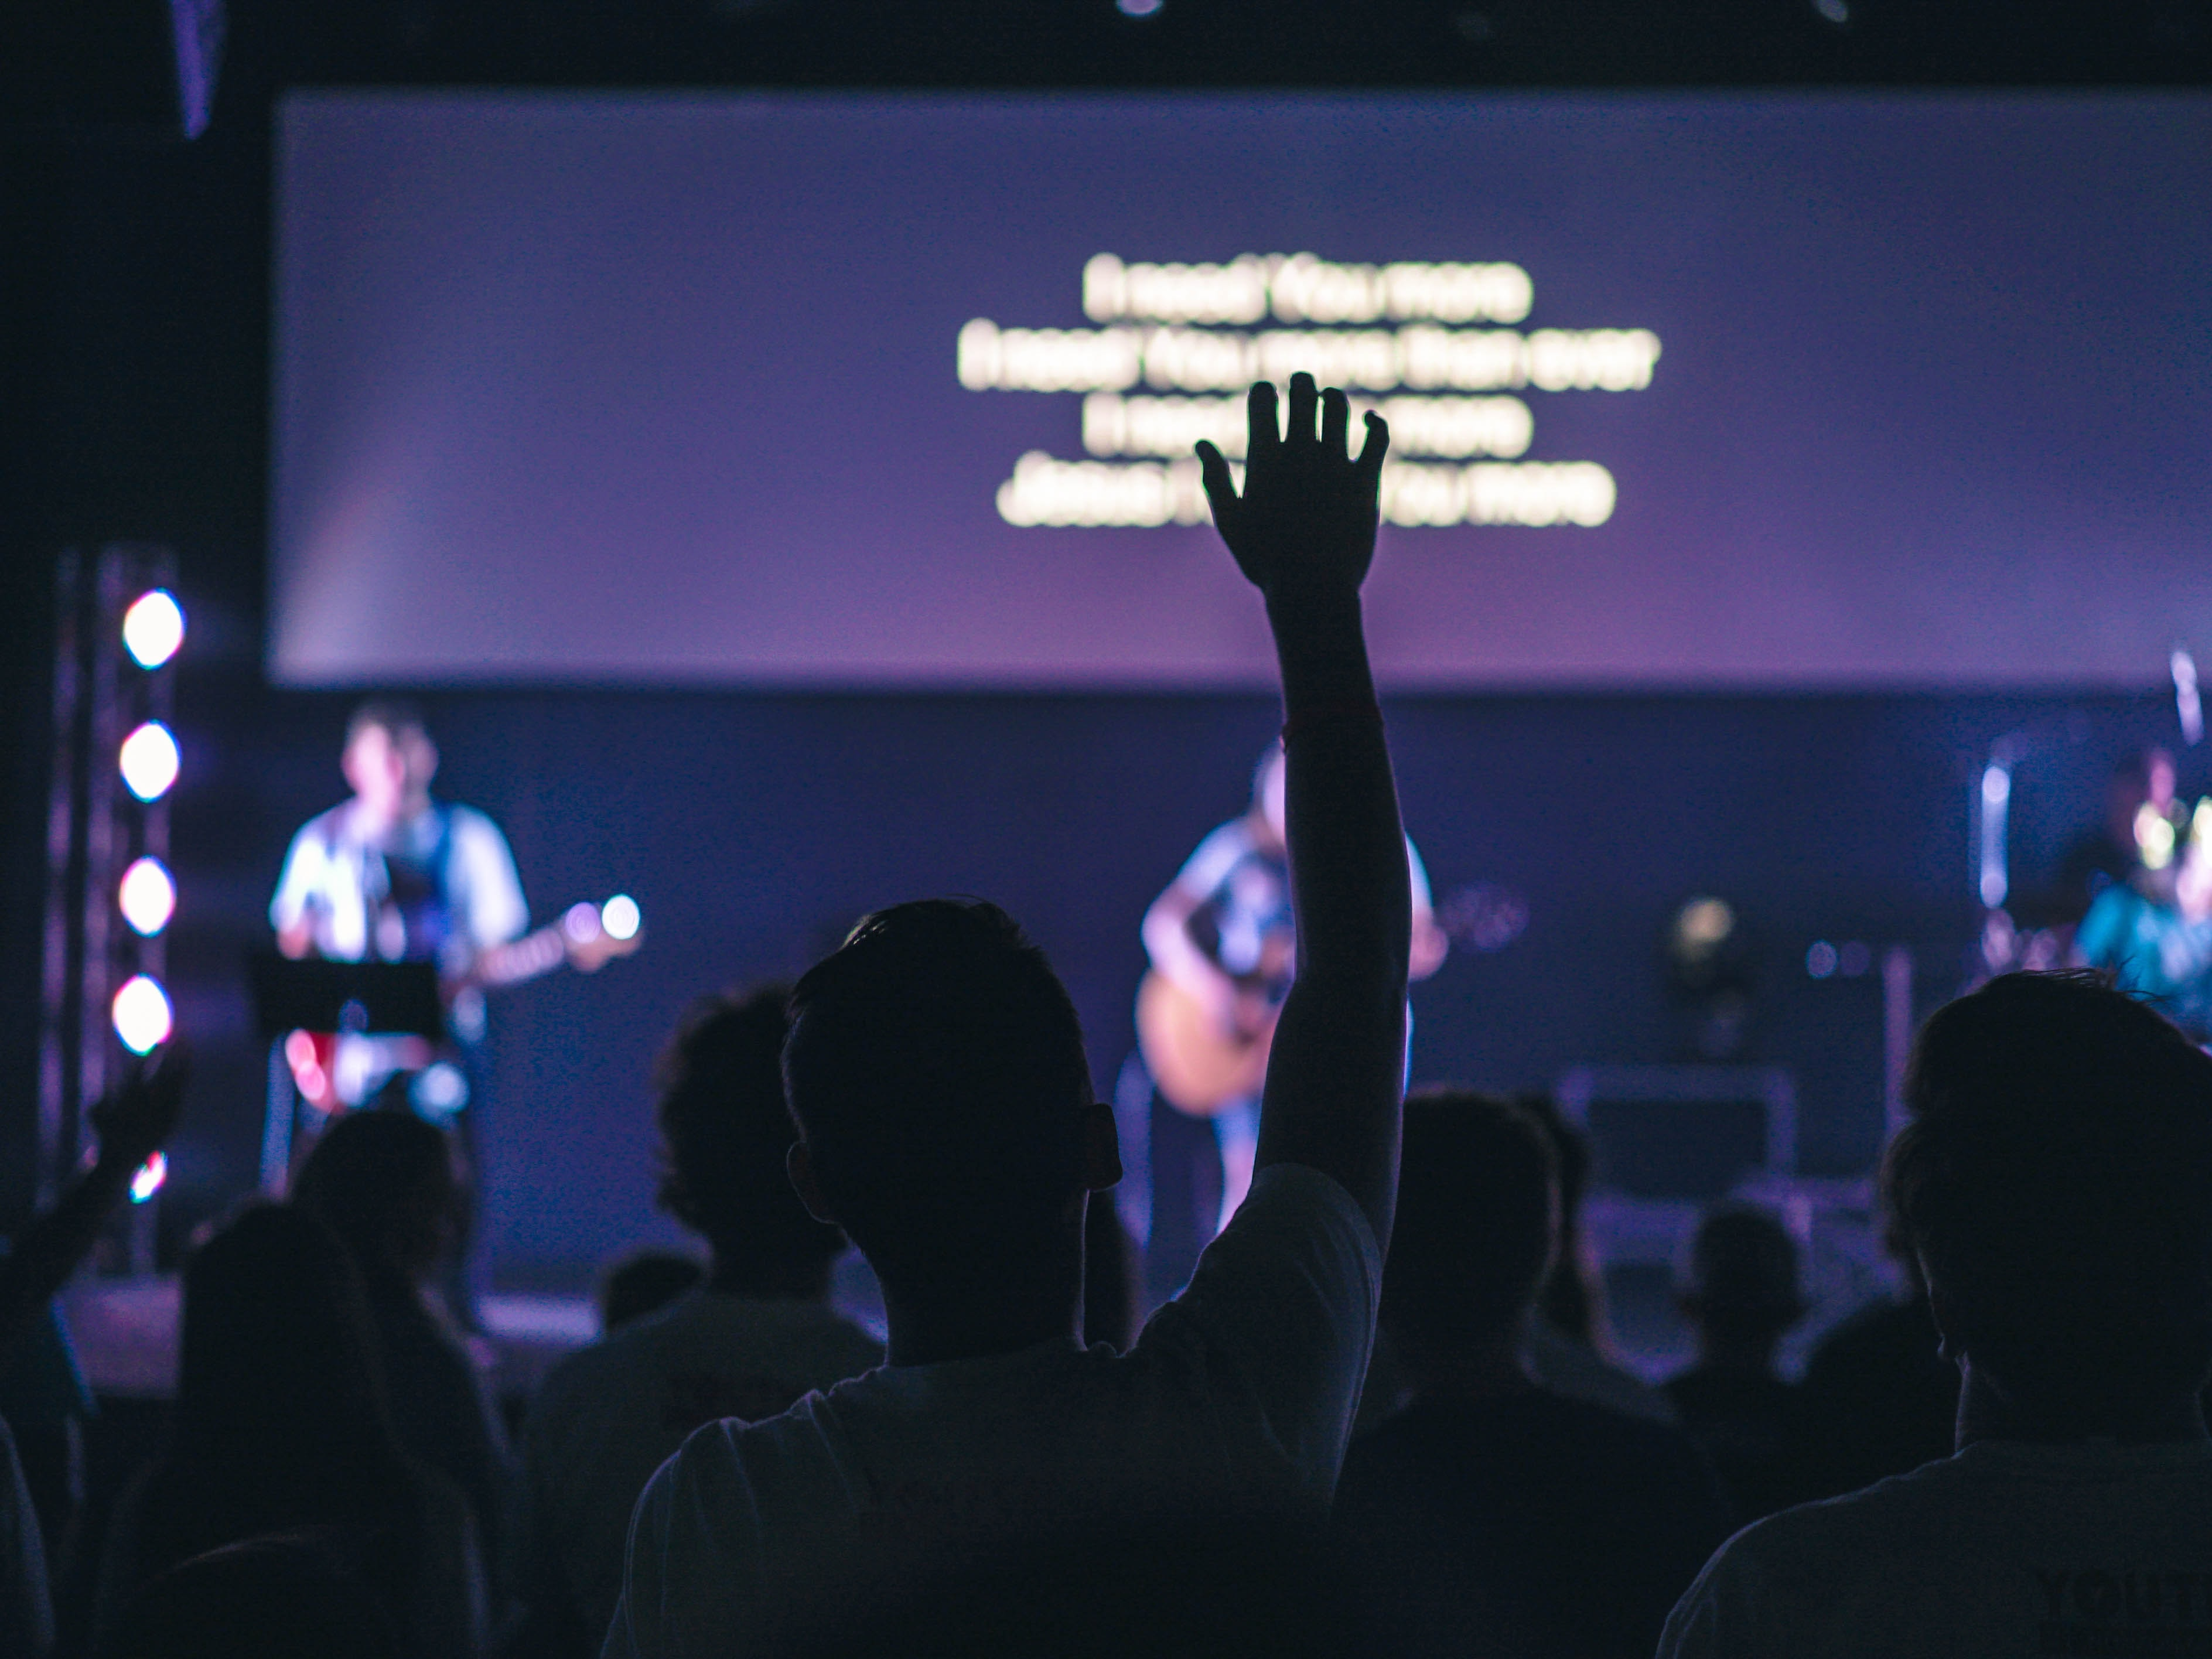 An audience member raises his hand during a music performance